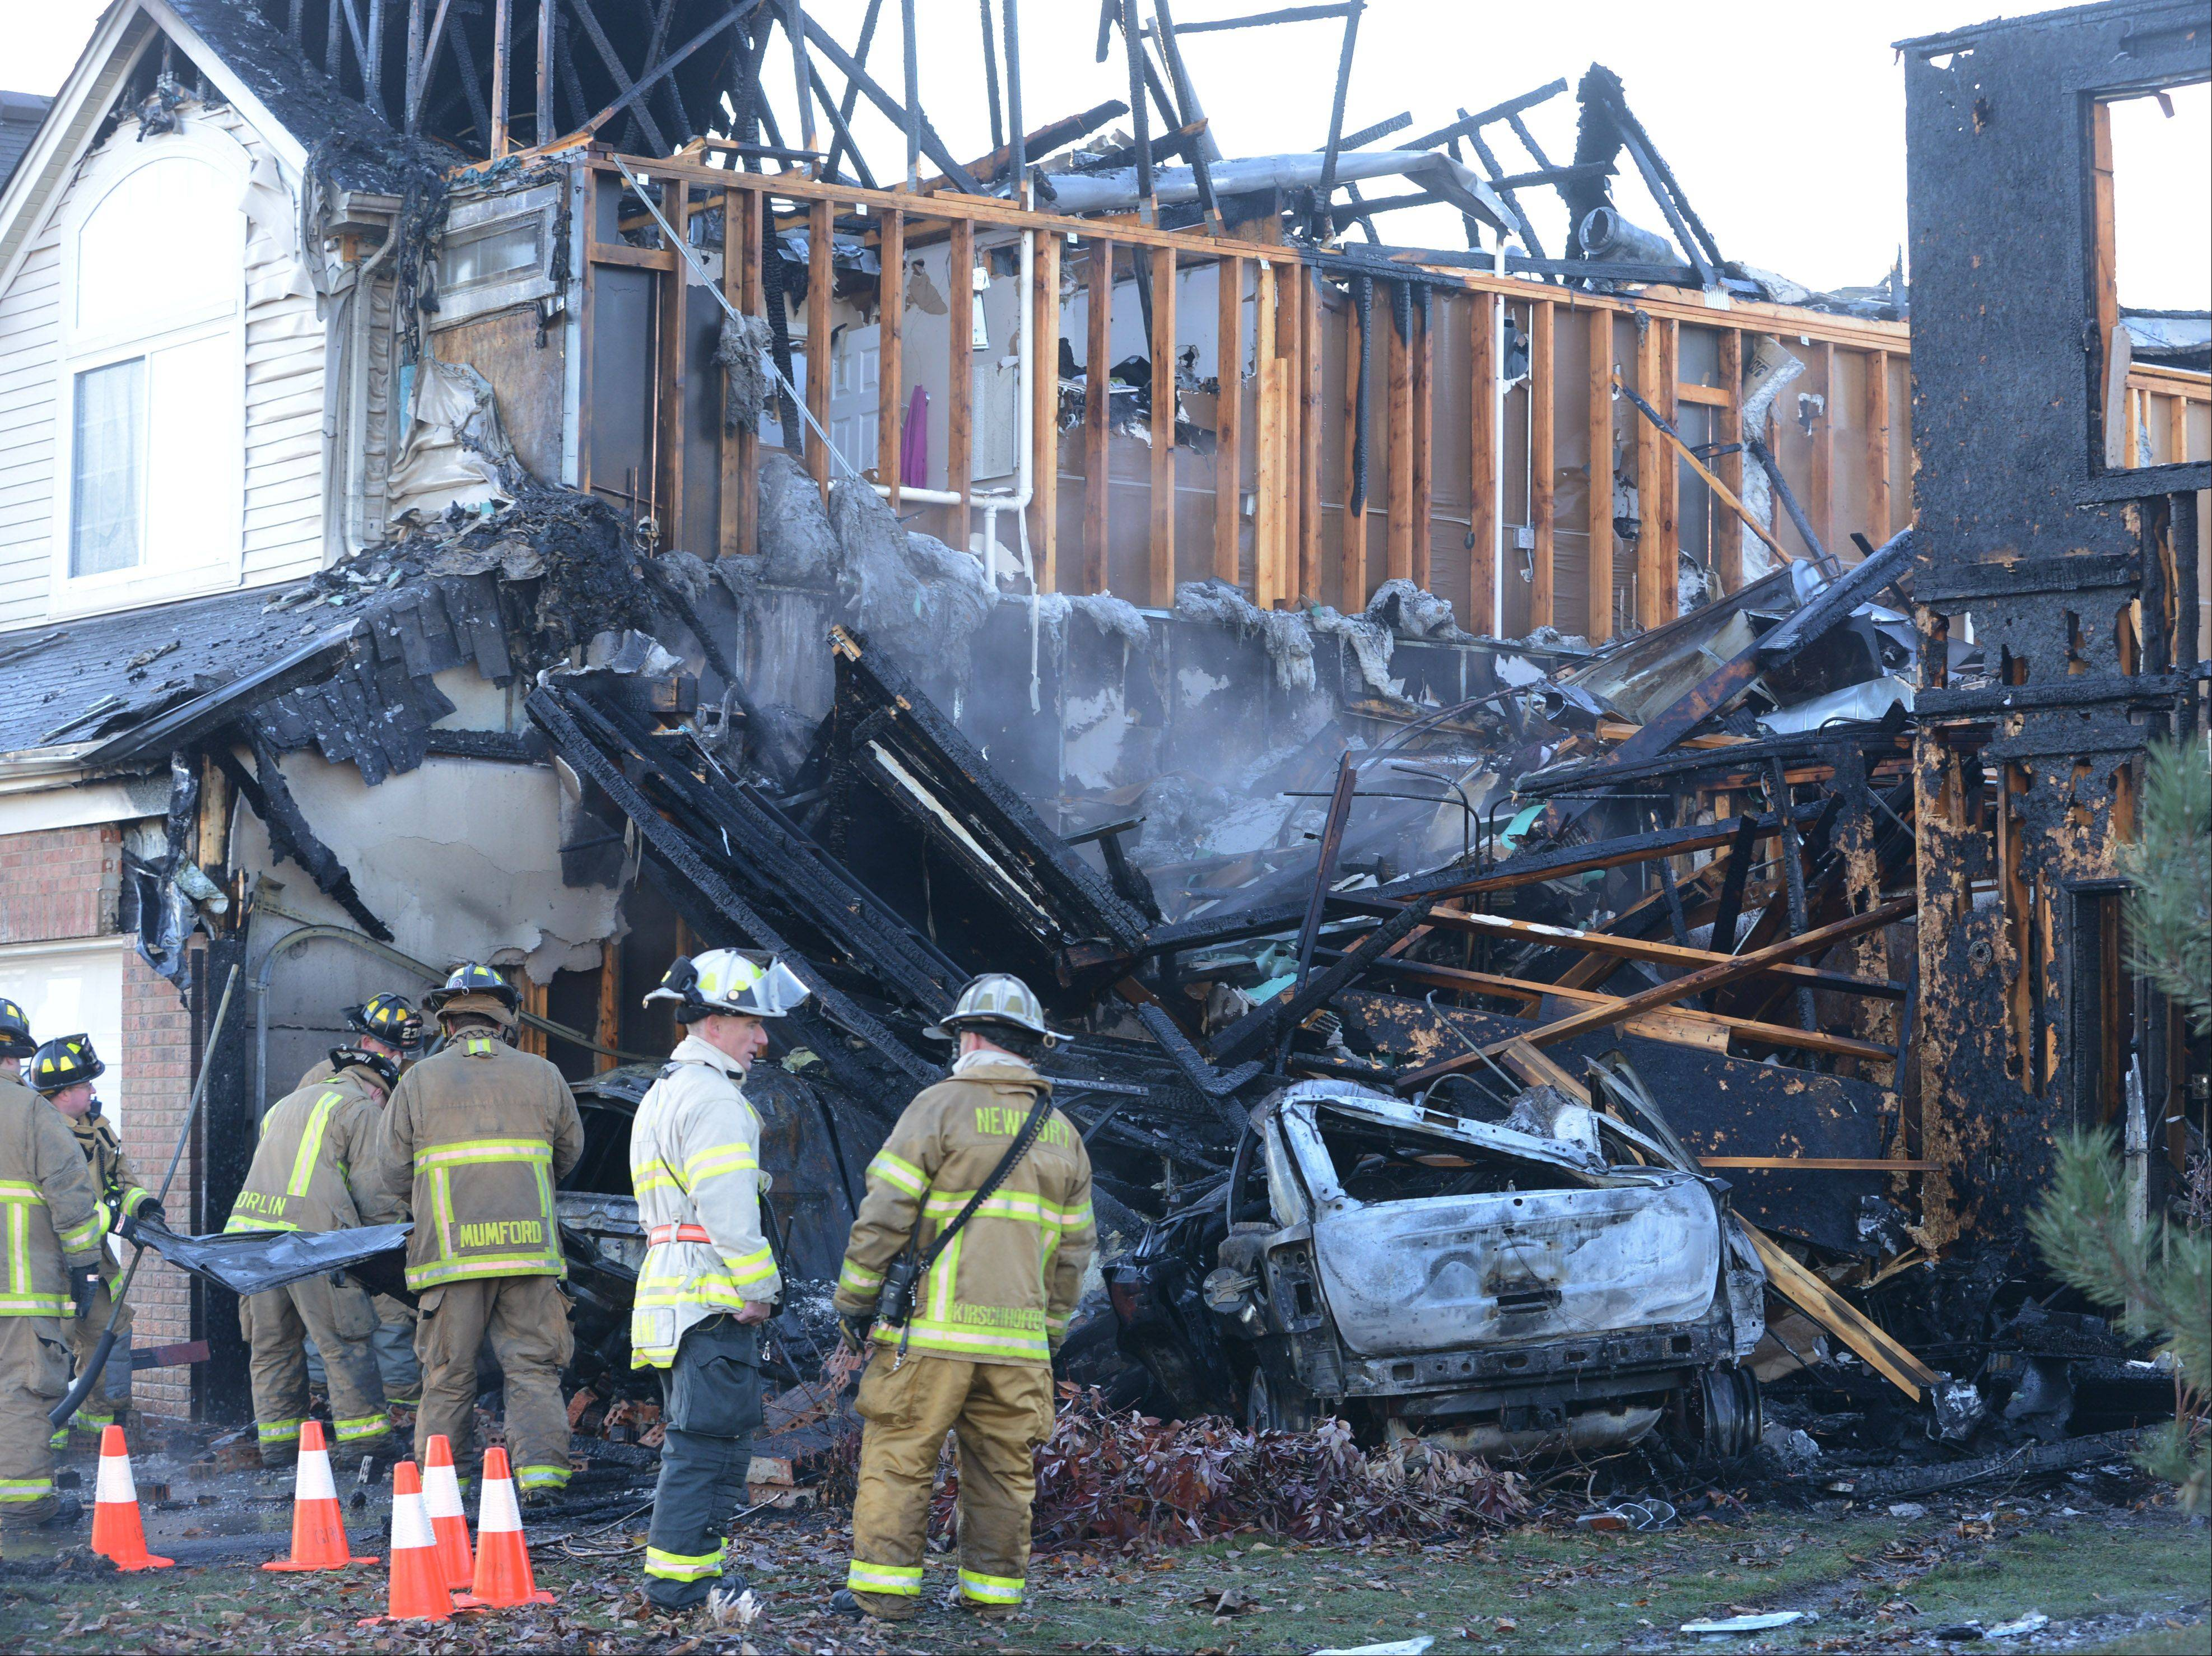 A townhouse was gutted by fire after a vehicle crashed into it early Friday morning on Patriot Drive in Hainesville.